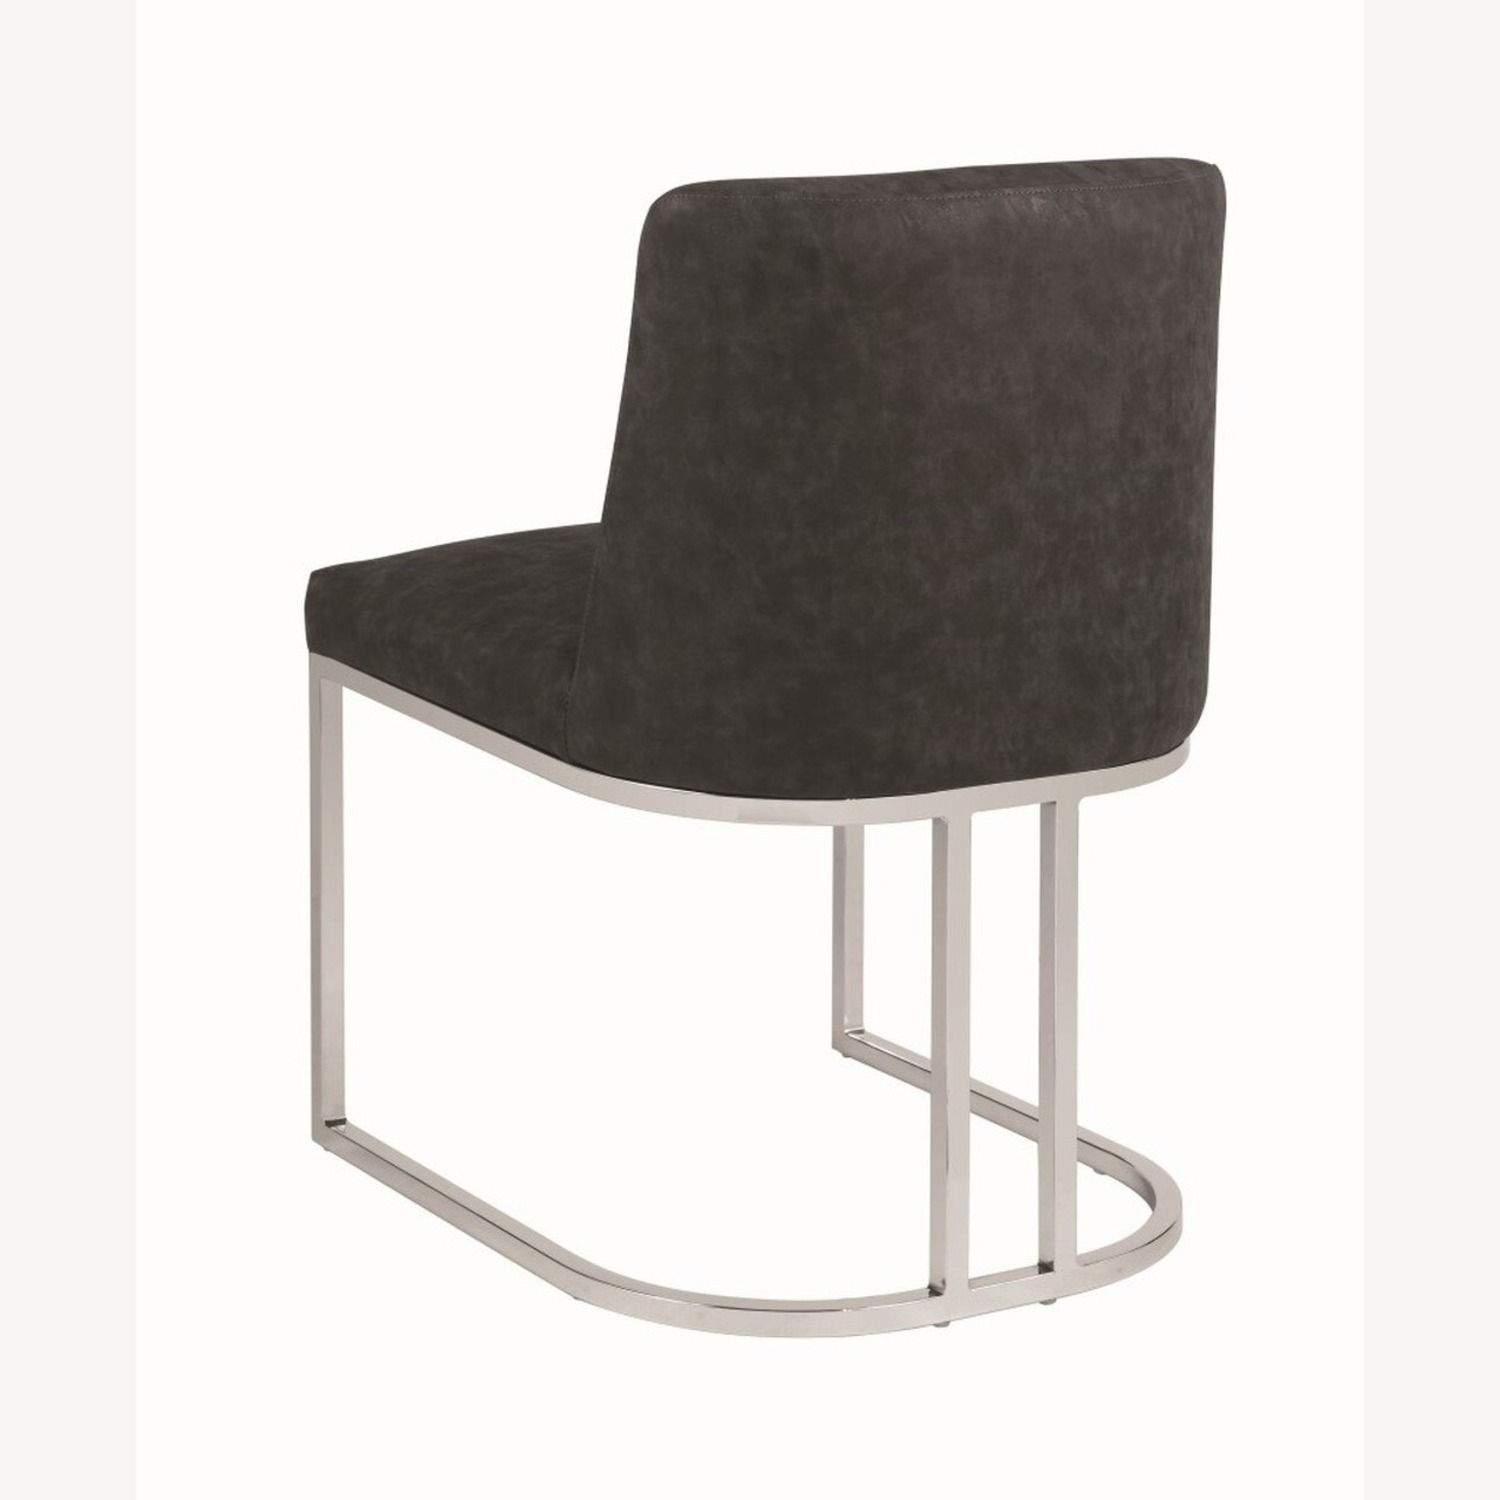 Modern Dining Chair In Black Leatherette - image-2